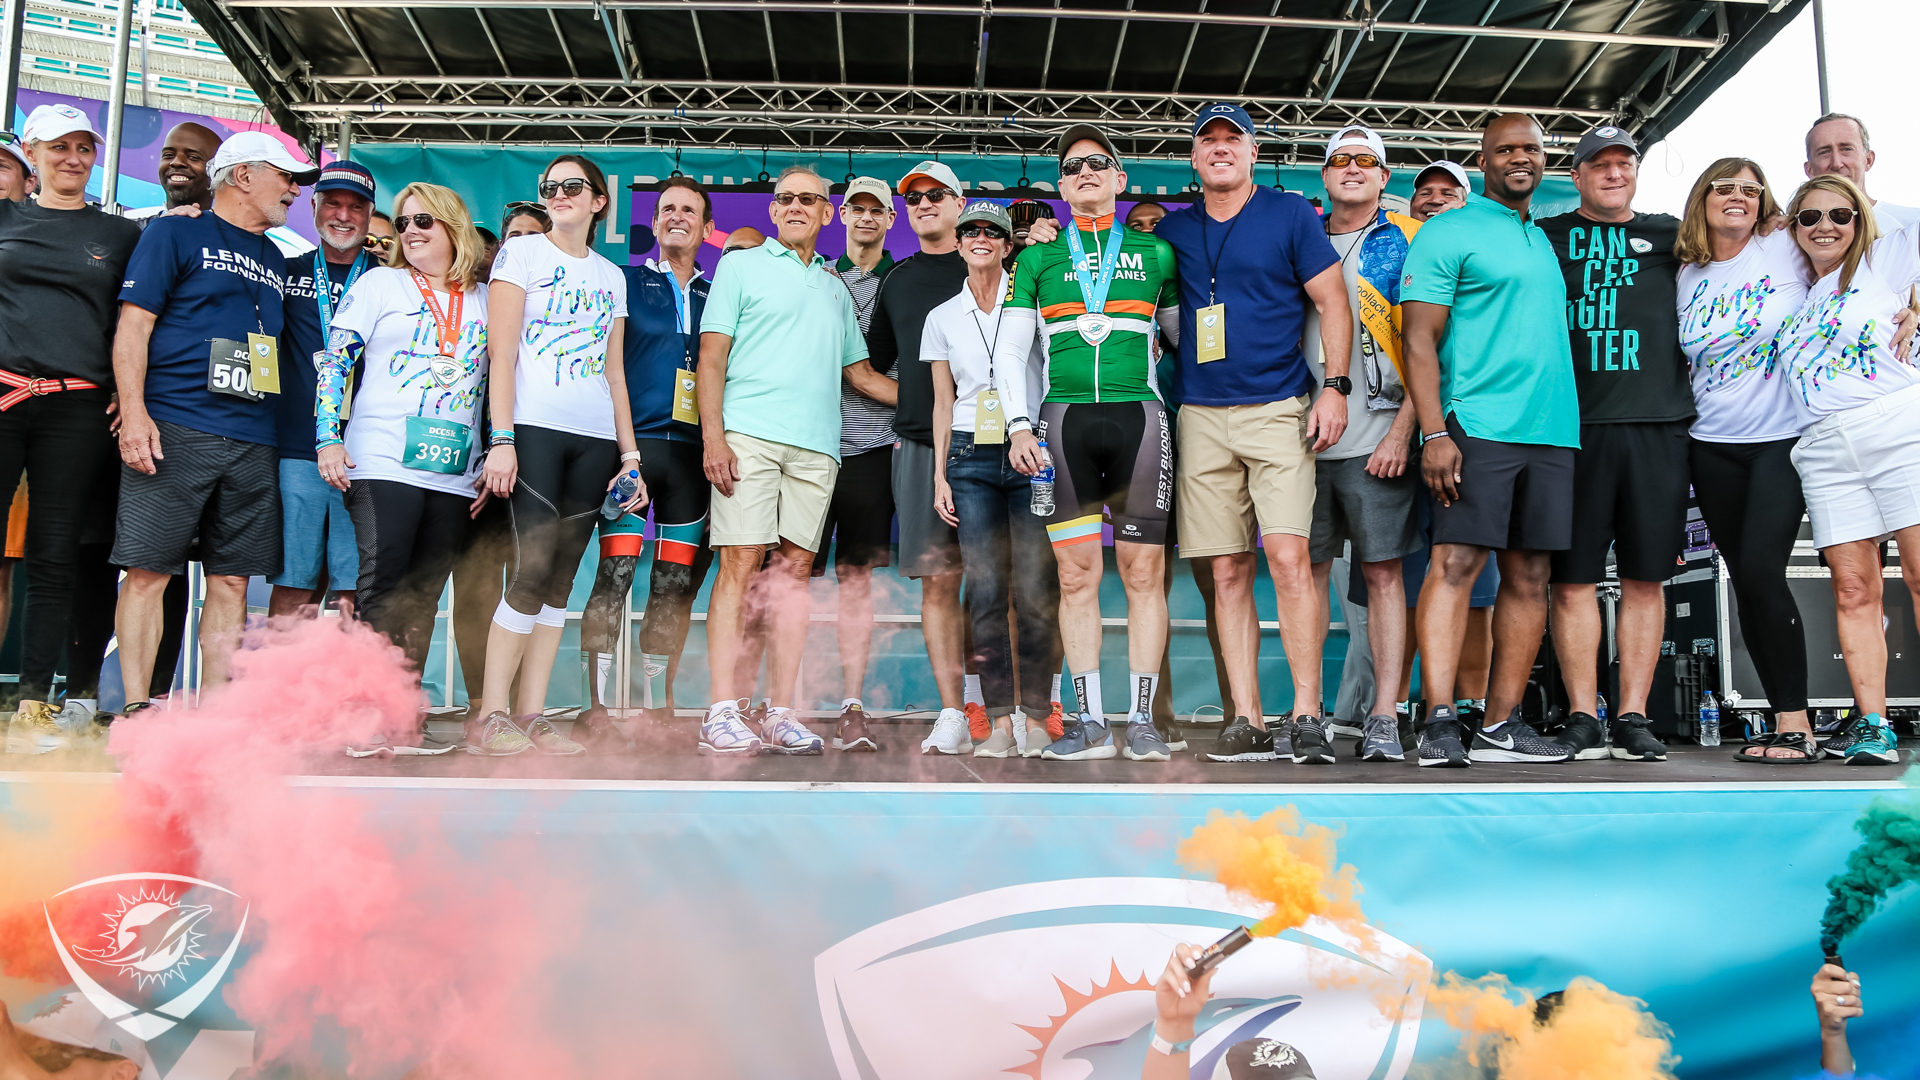 Successful Dolphins Cancer Challenge